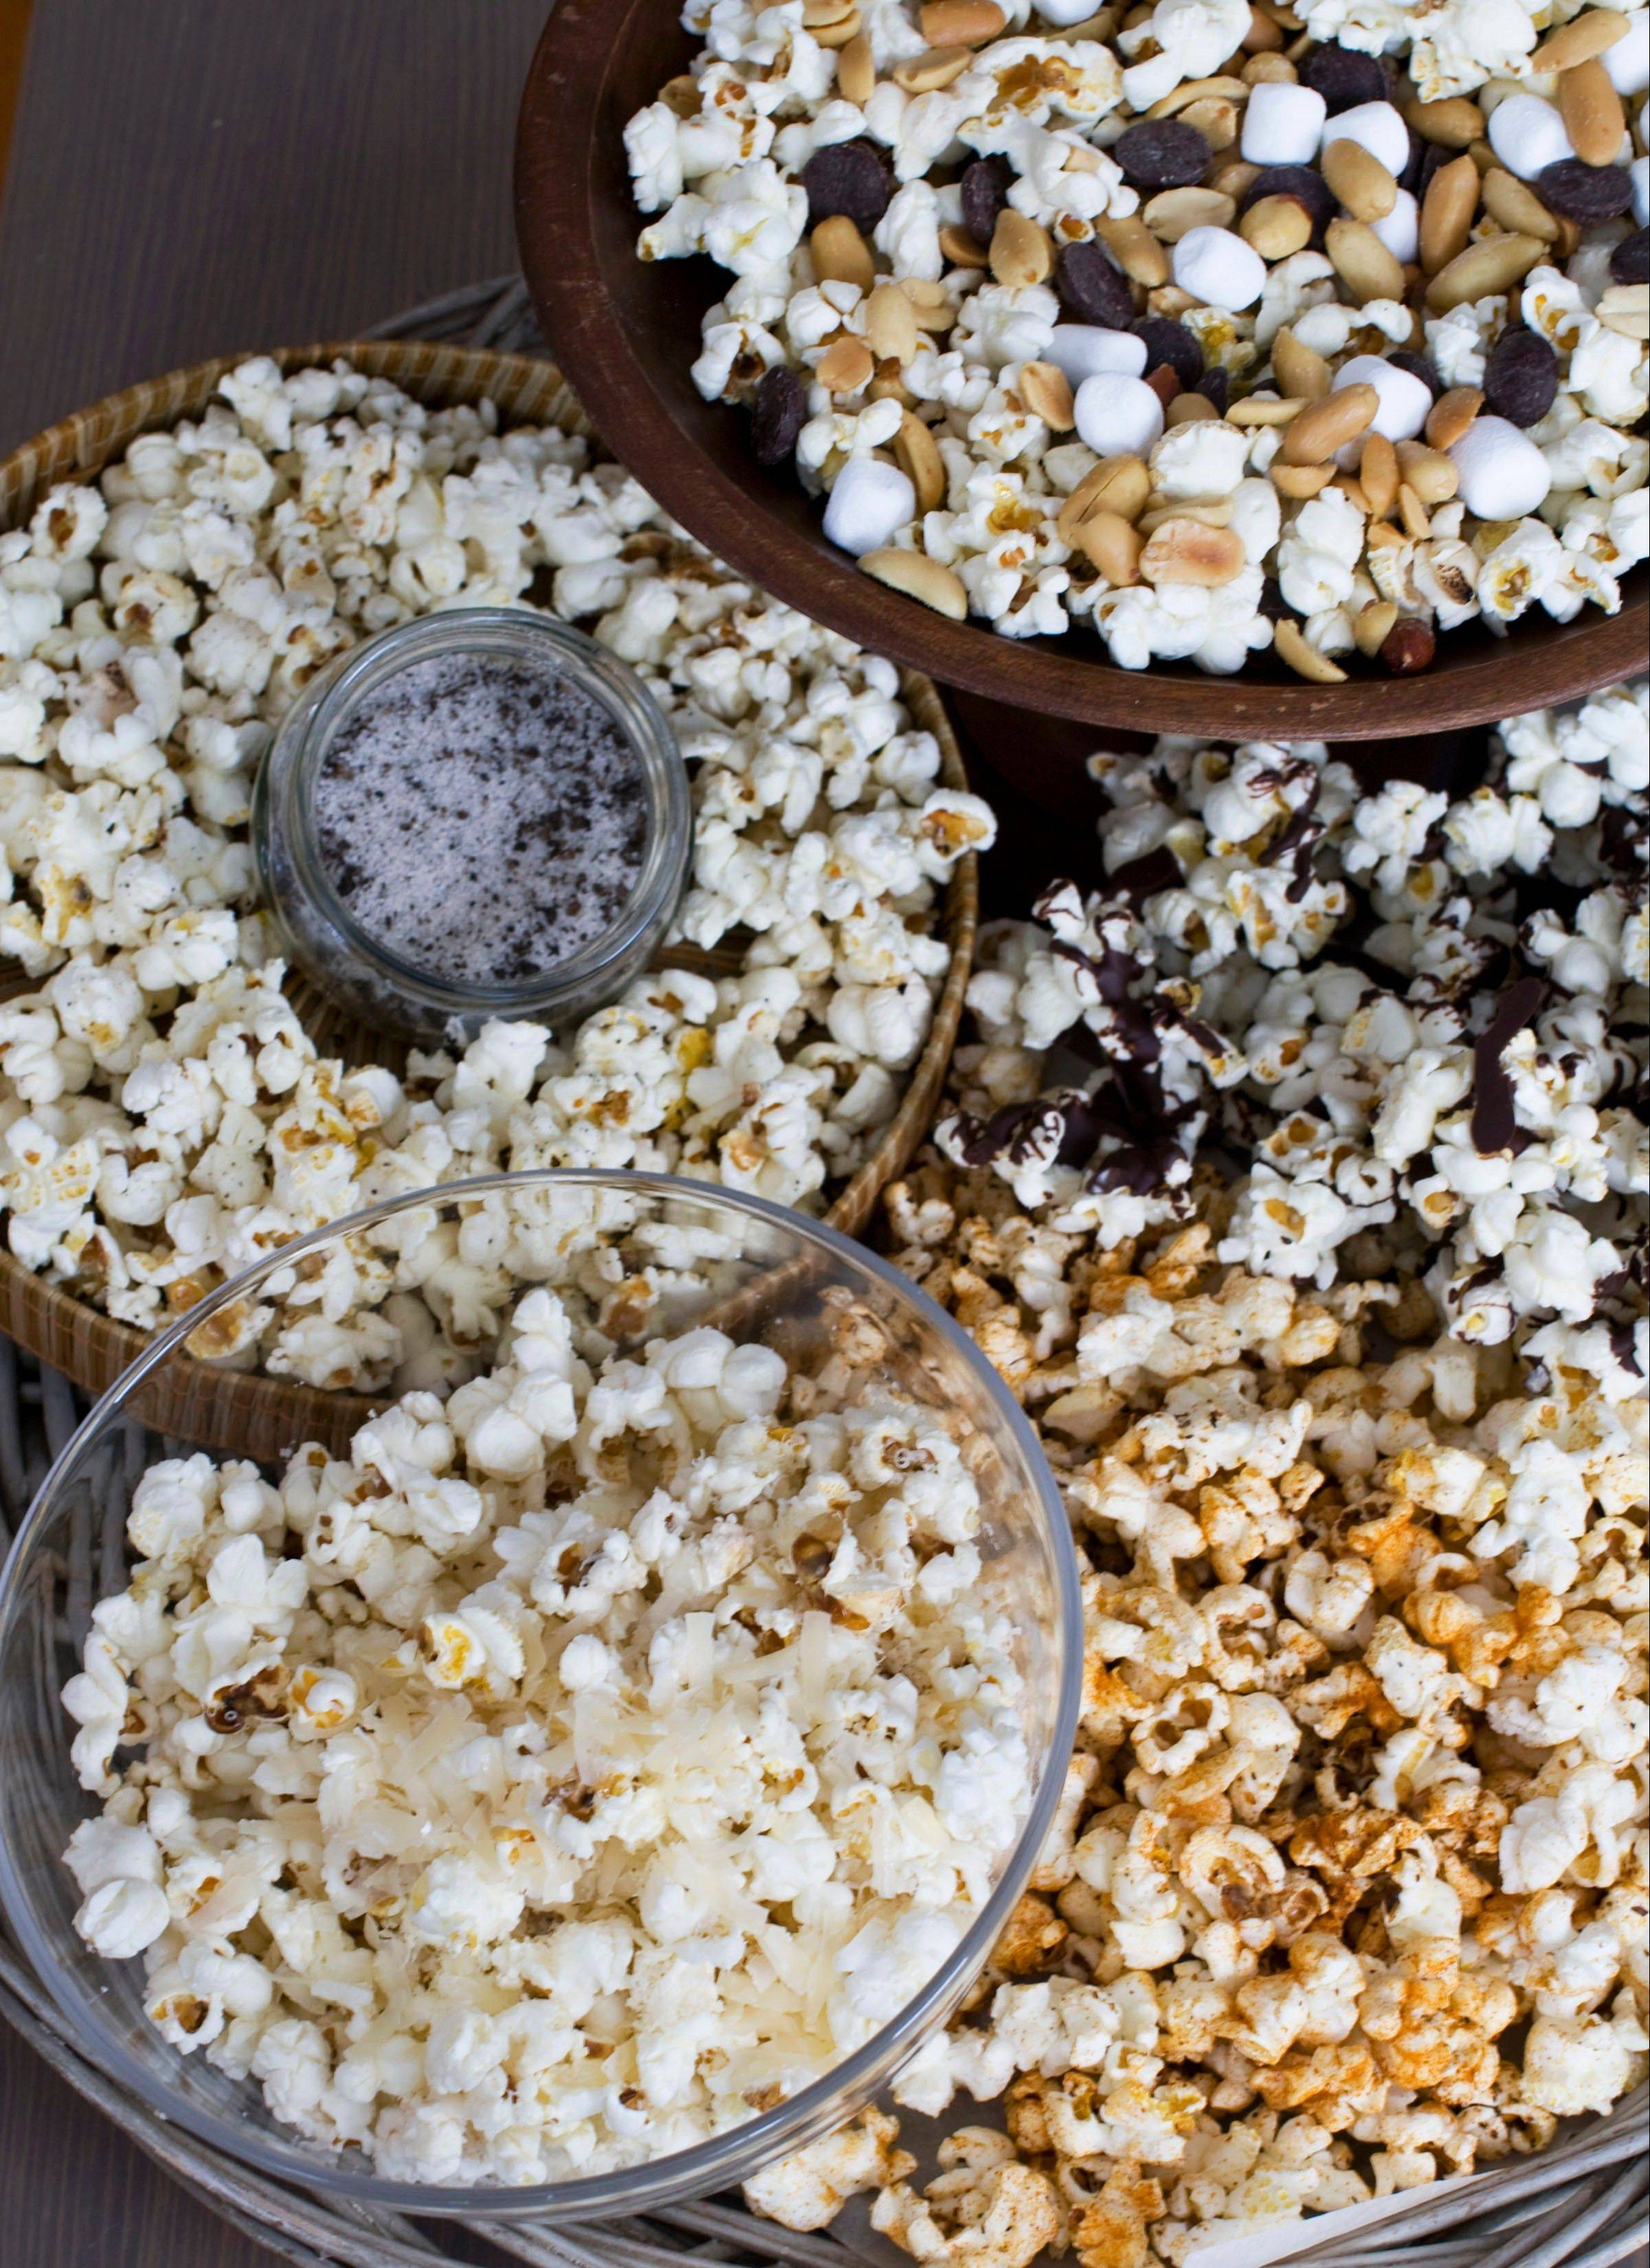 Stovetop Popcorn Many Ways, from top clockwise, mini marshmallows, chocolate chips and salted peanuts, melted chocolate, sweet and spicy barbecue rub, finely grated parmesan cheese, and truffle salt.